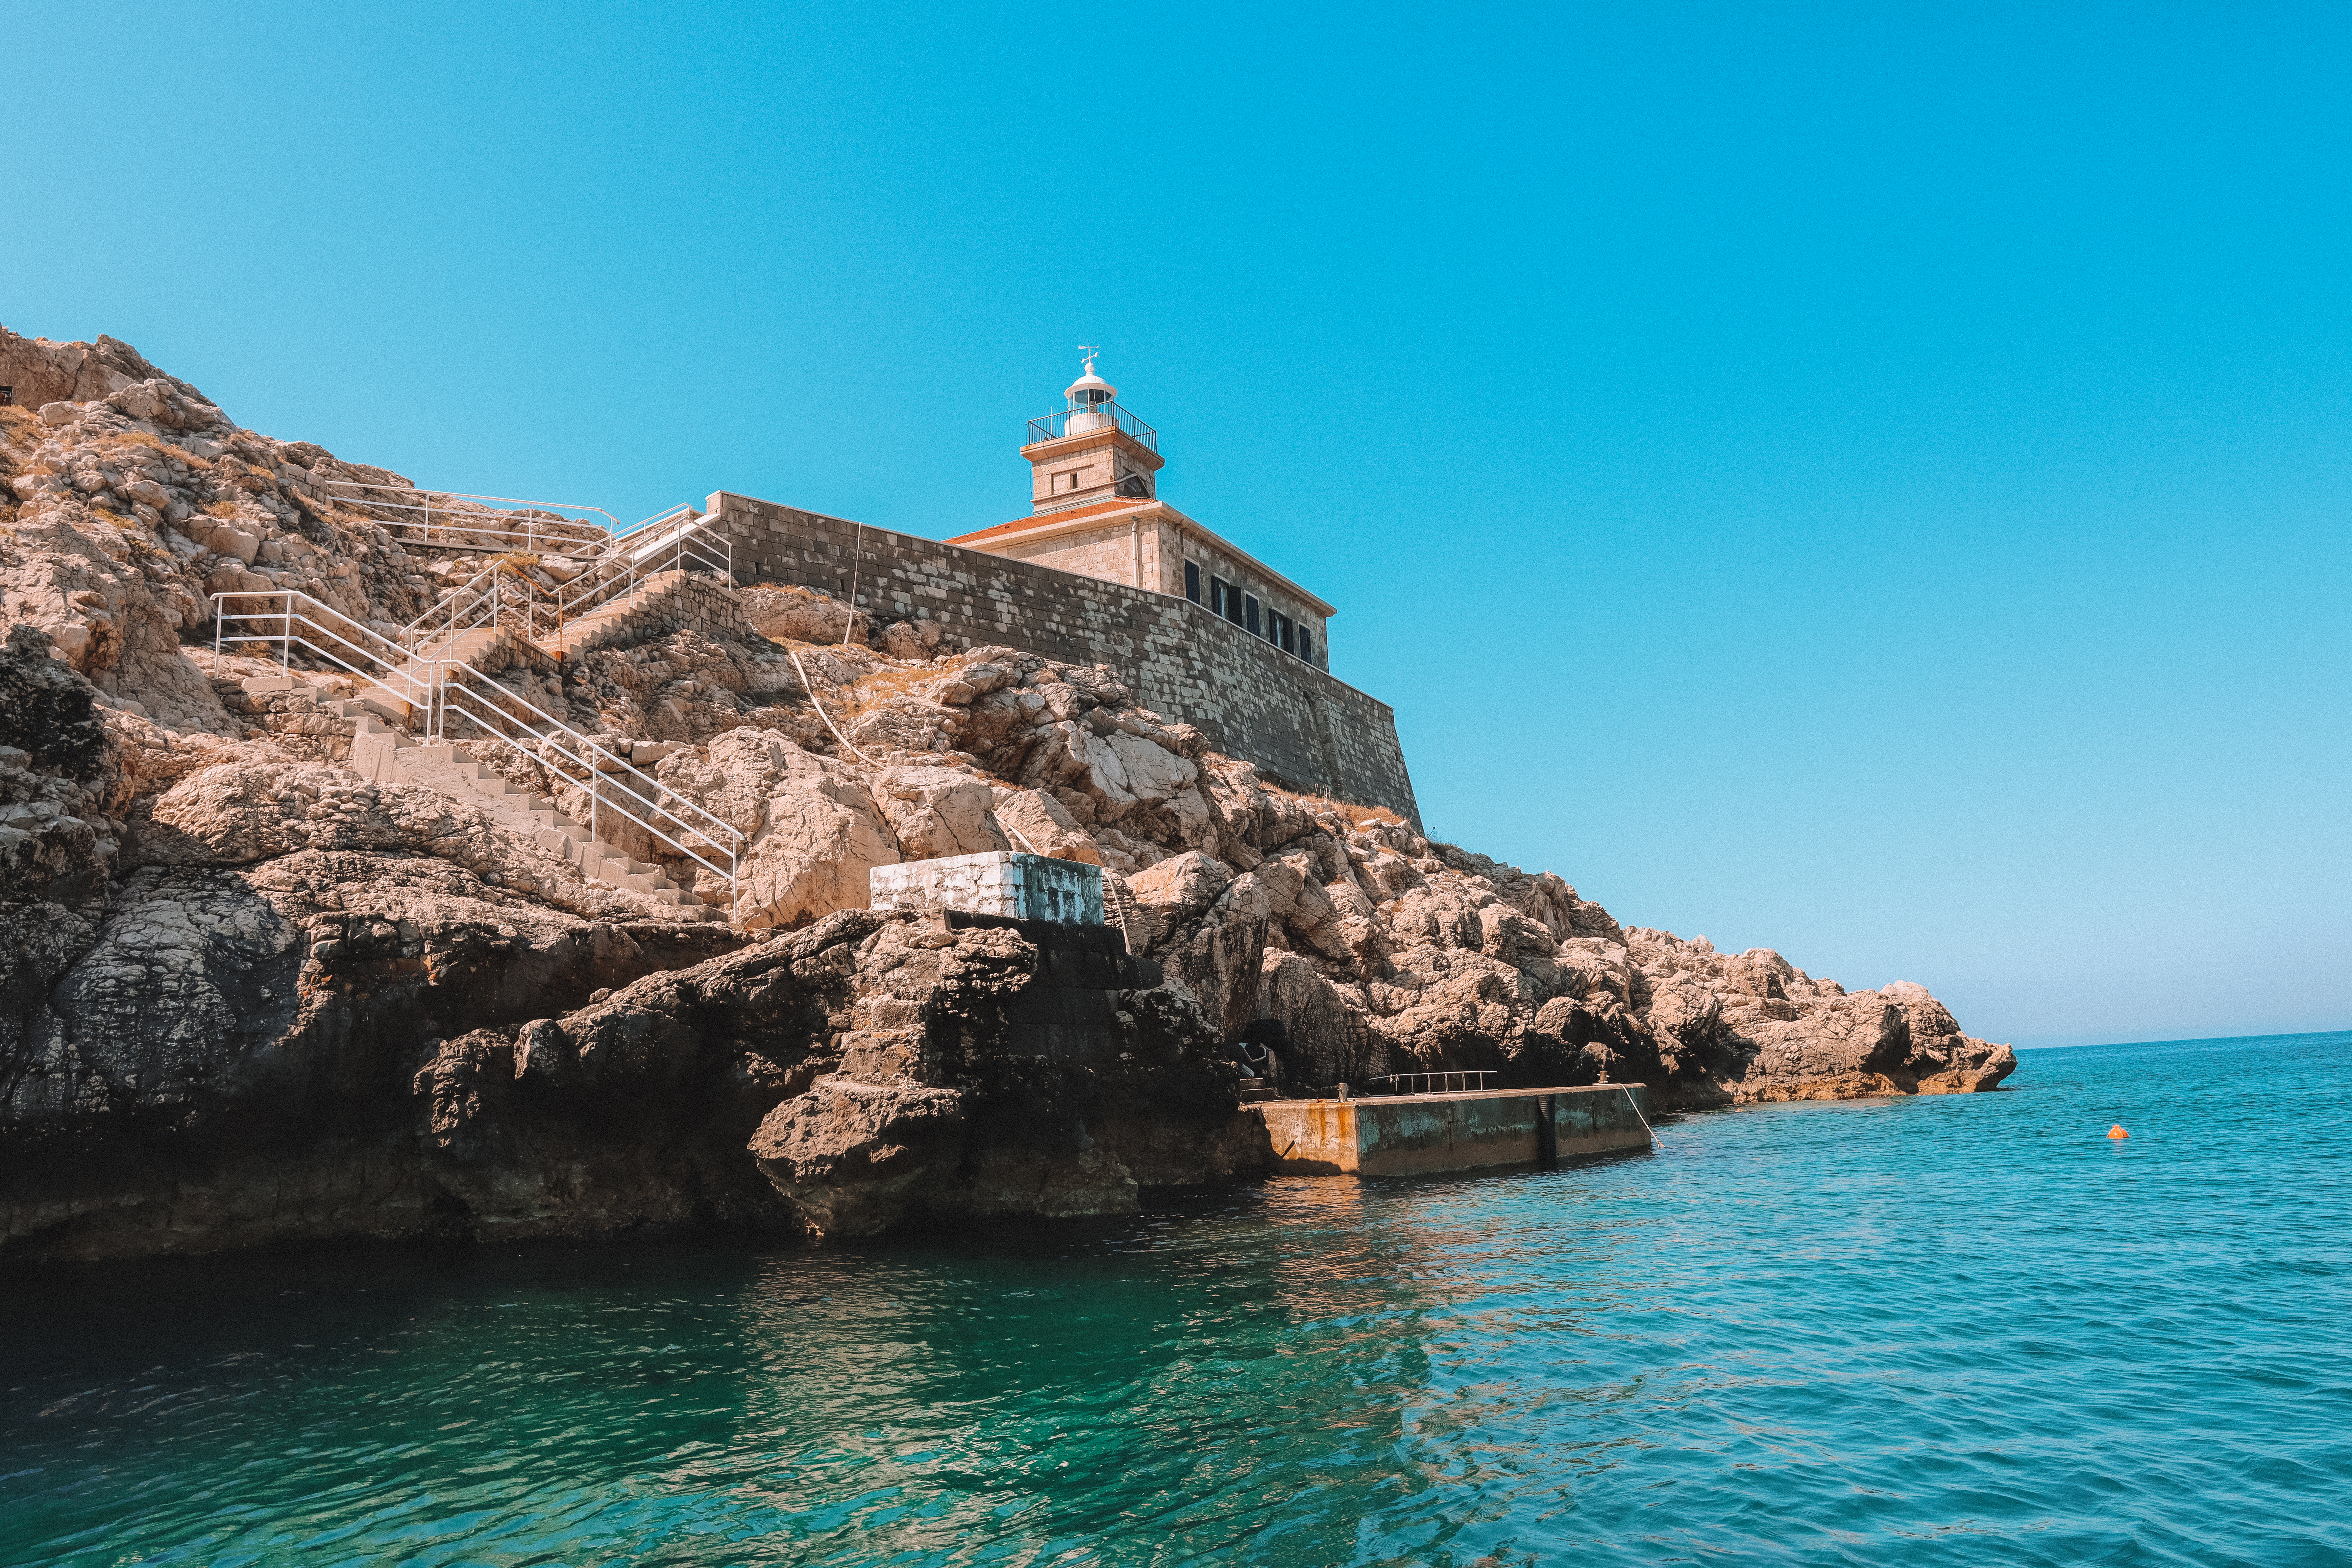 A lighthouse near the Elafiti islands. Things to do in Dubrovnik